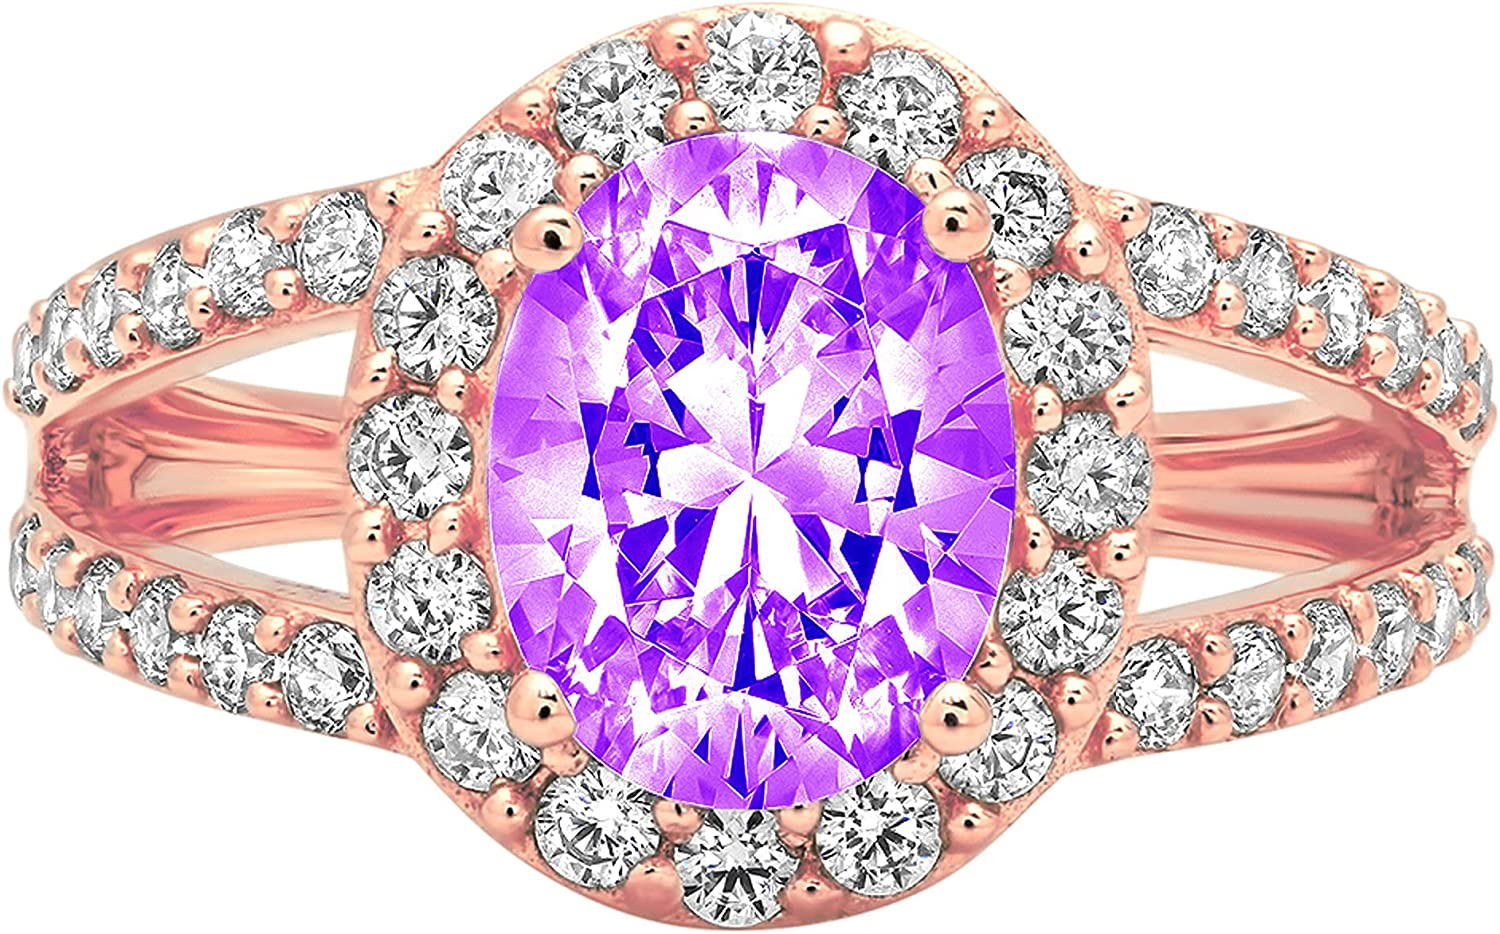 Clara Pucci 2.34 ct Oval Cut S Solitaire split shank Halo Oakland Manufacturer OFFicial shop Mall Accent